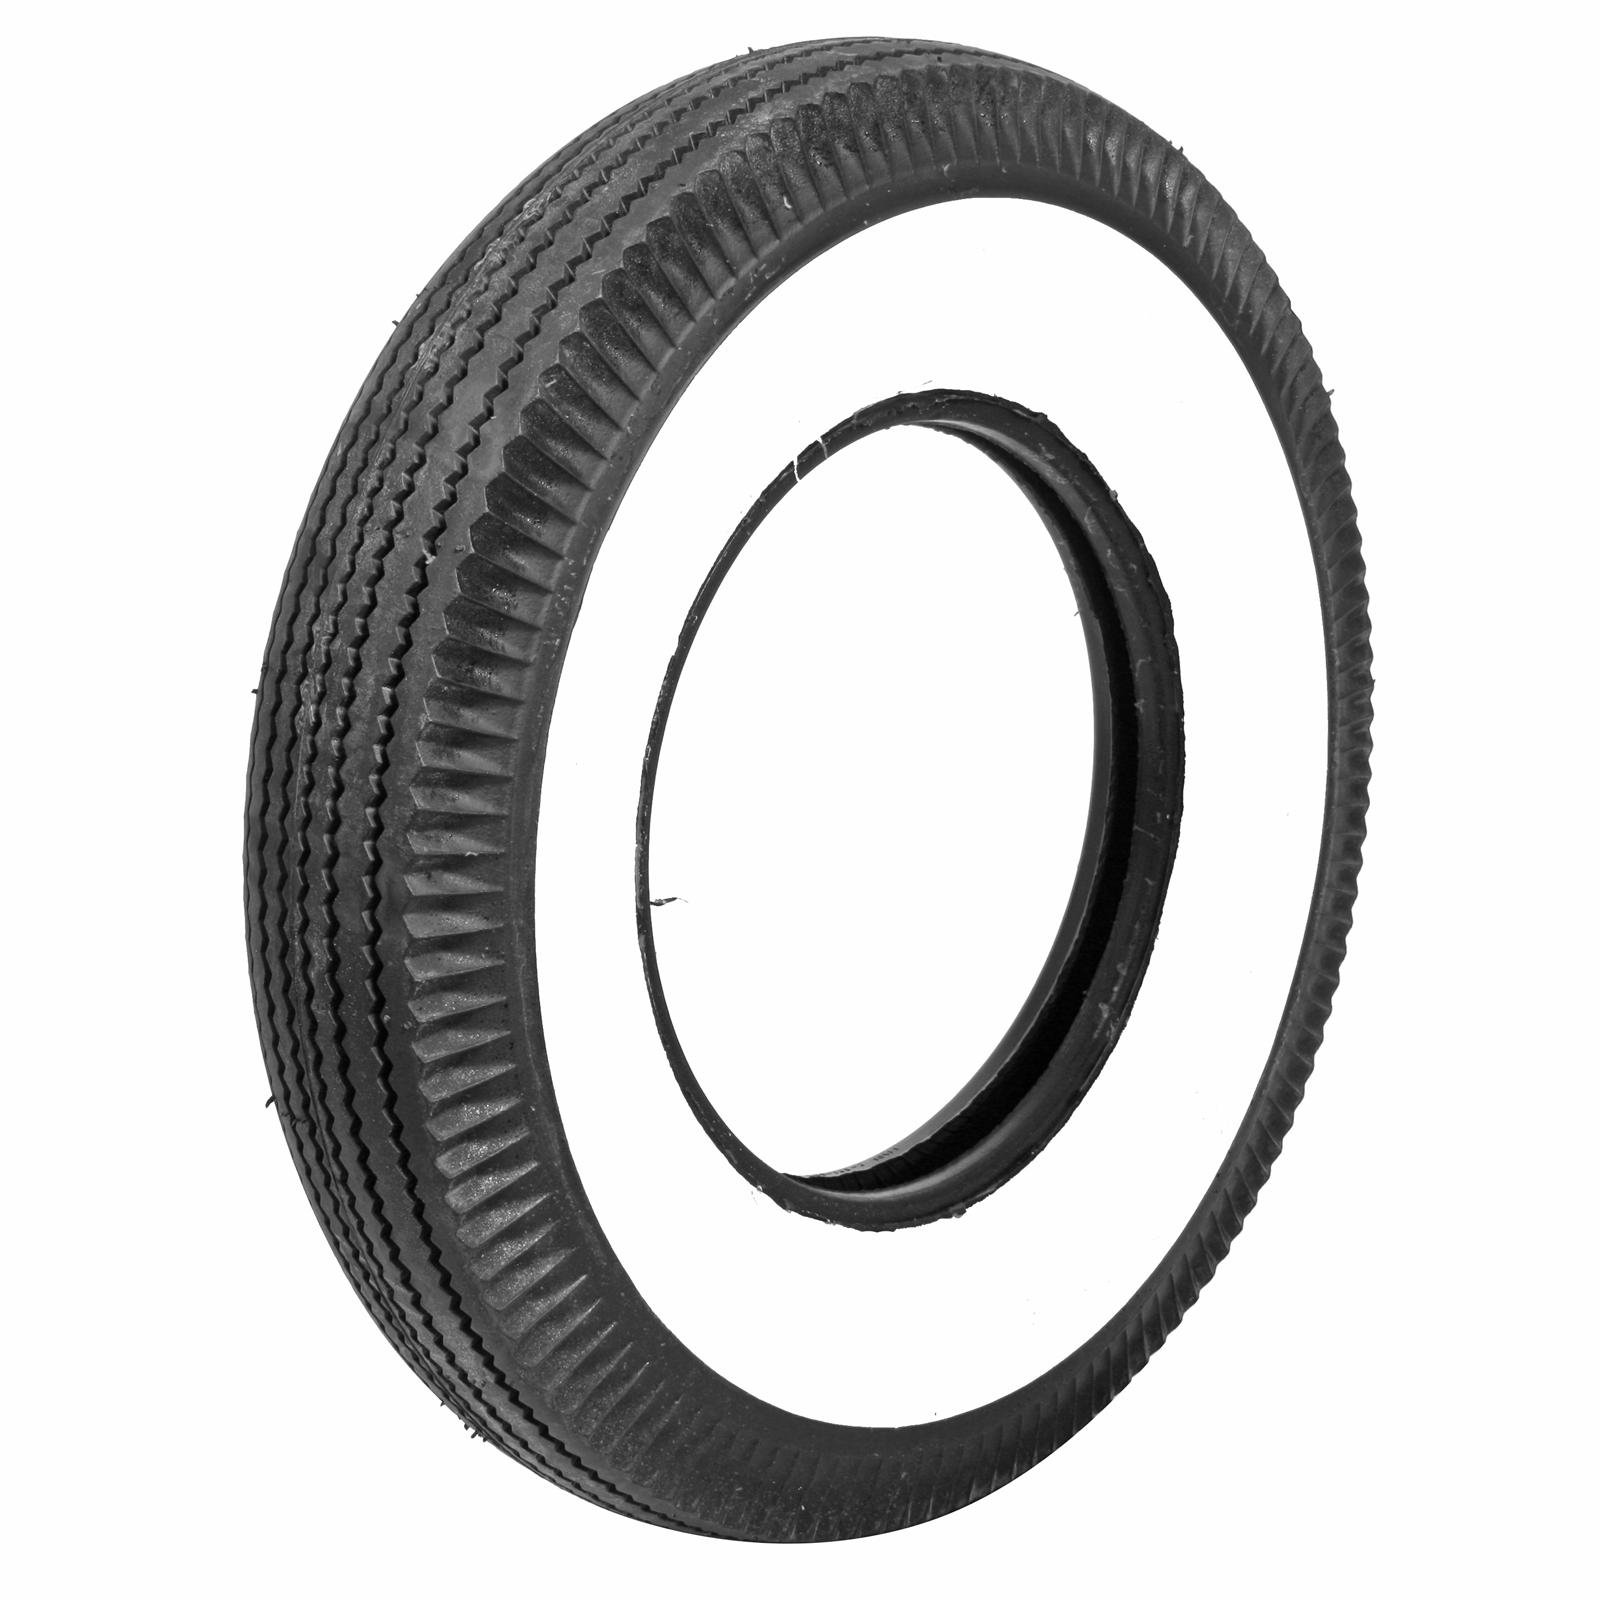 Coker Firestone Vintage 3 1/4 in Whitewall Tire 6.70-15 ...